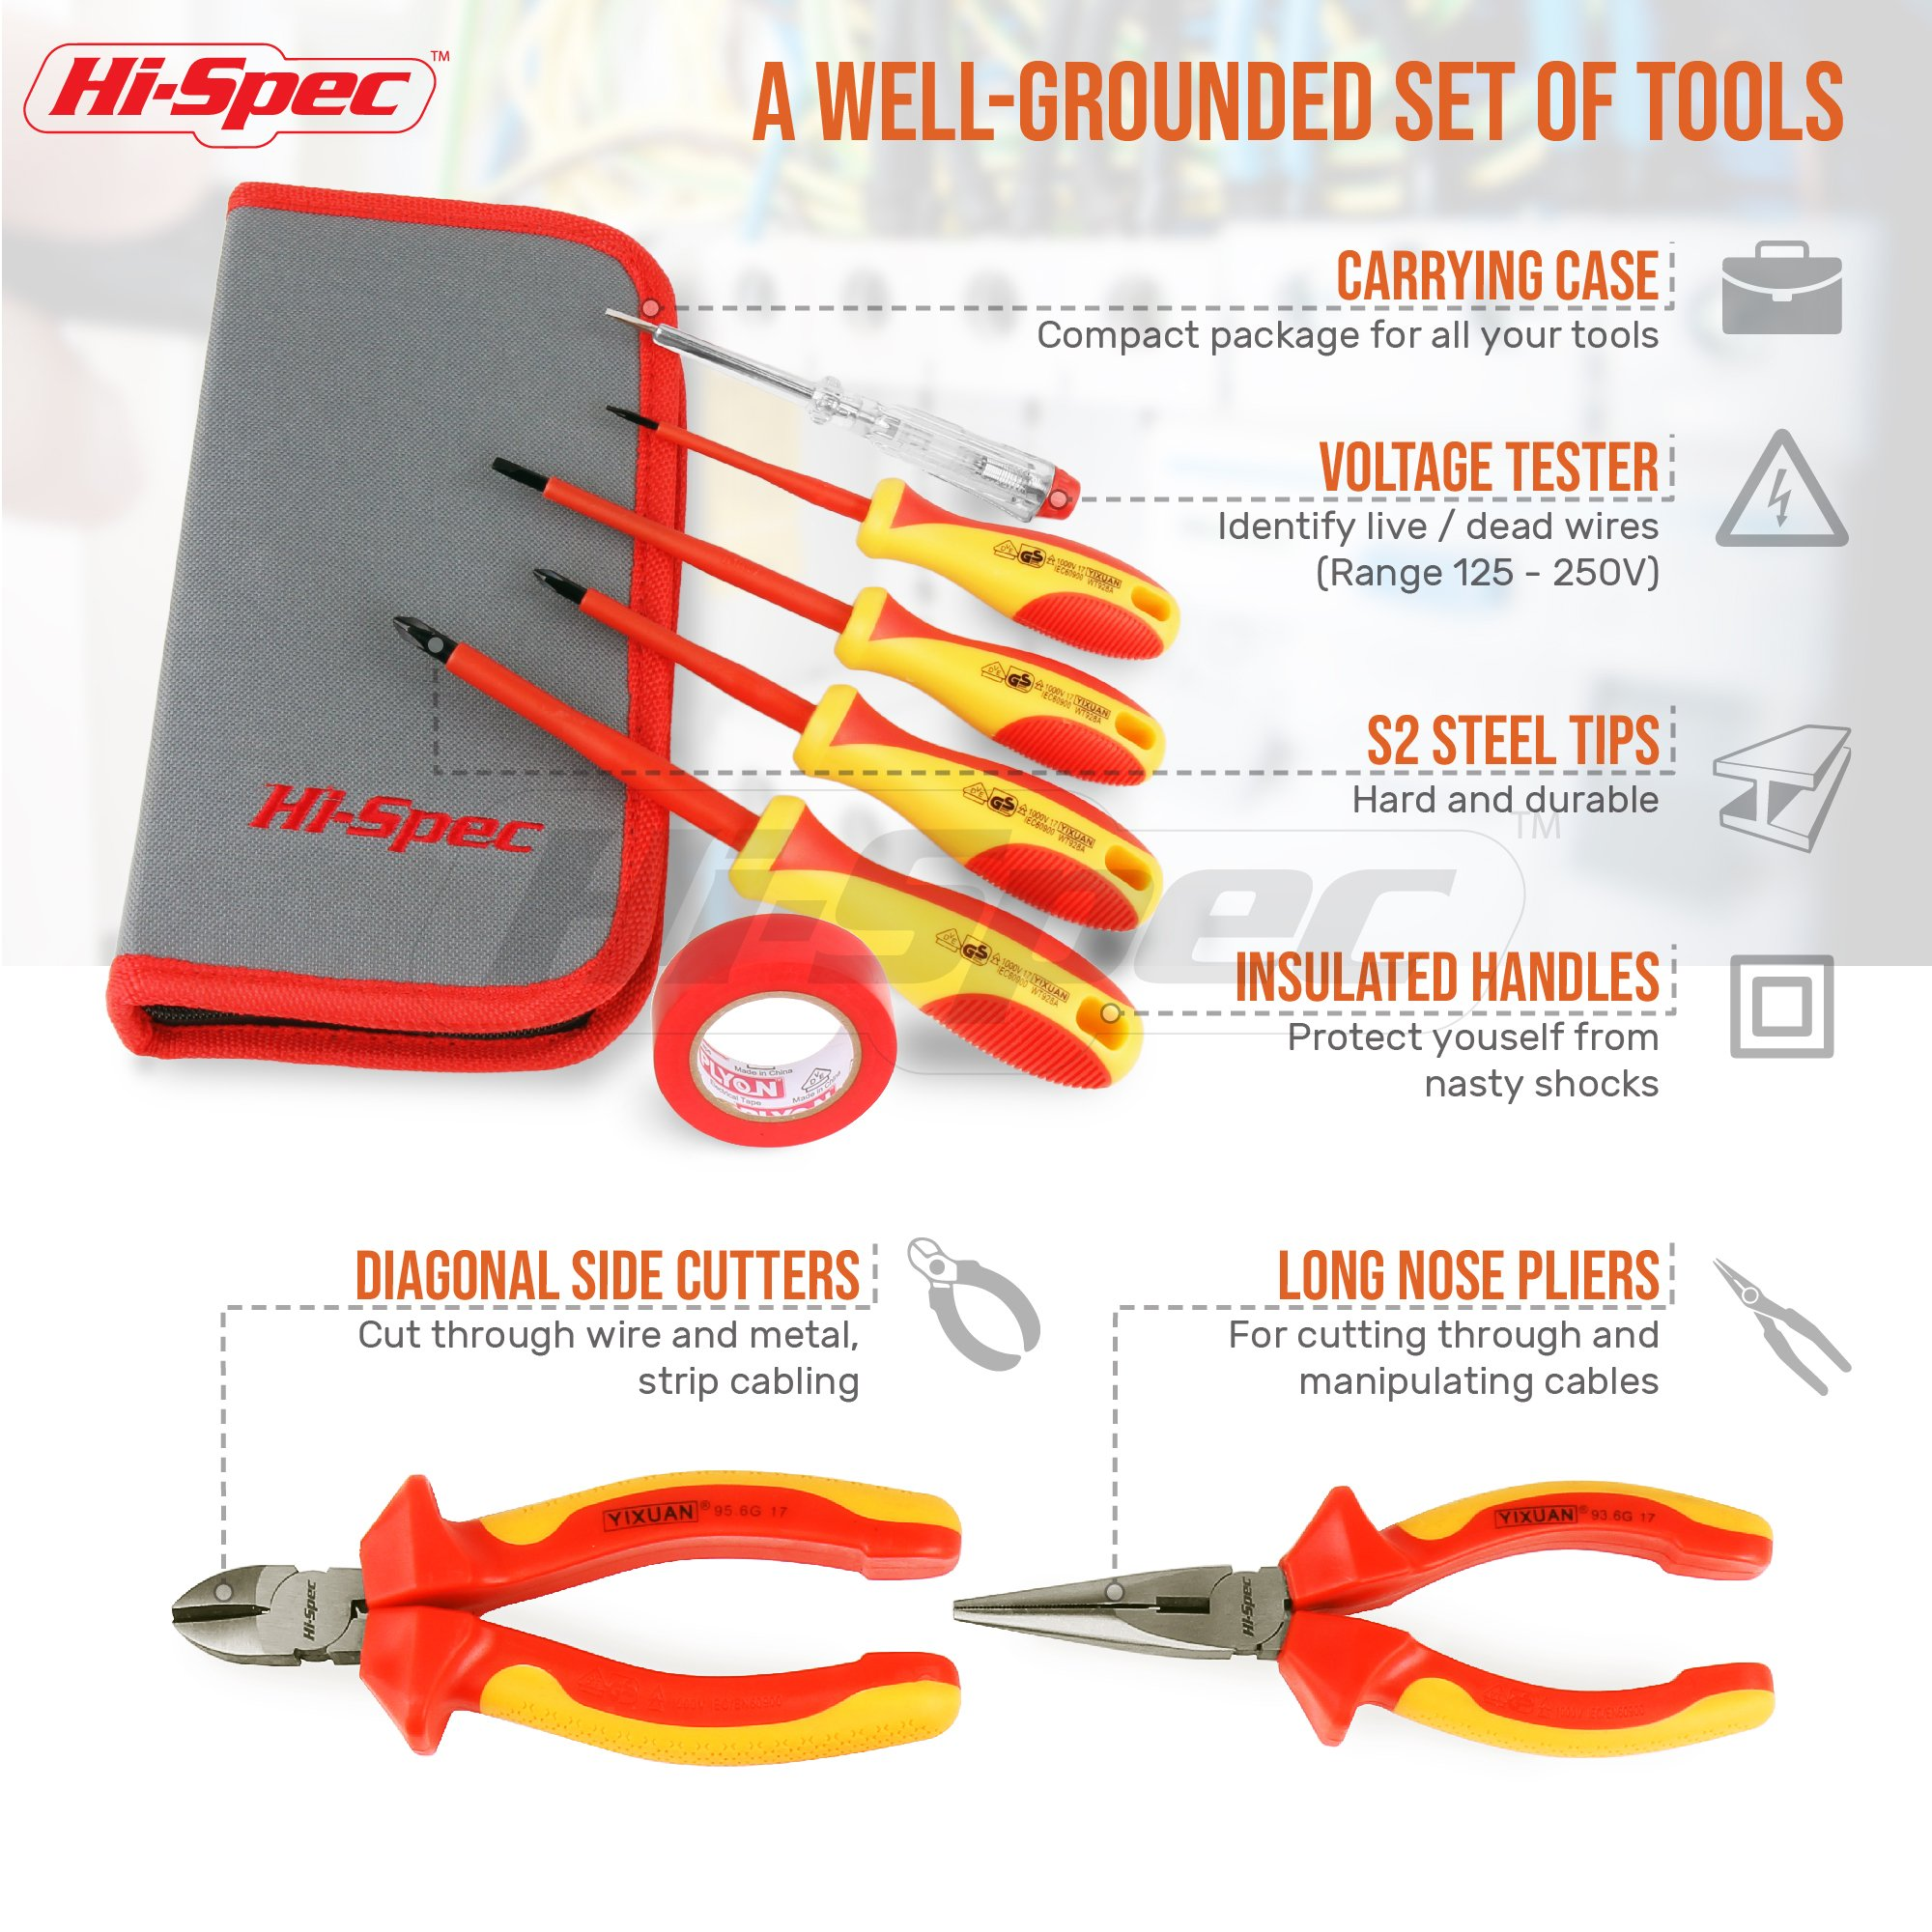 Hi-Spec 8 Piece Insulated Electrician Tool Set – 1000V VDE Approved Pliers, Slotted & Phillips Screwdrivers with S2 Steel Tips, Voltage Tester & Electrical Tape for DIY, Electrical Task, in Case by Hi-Spec (Image #3)